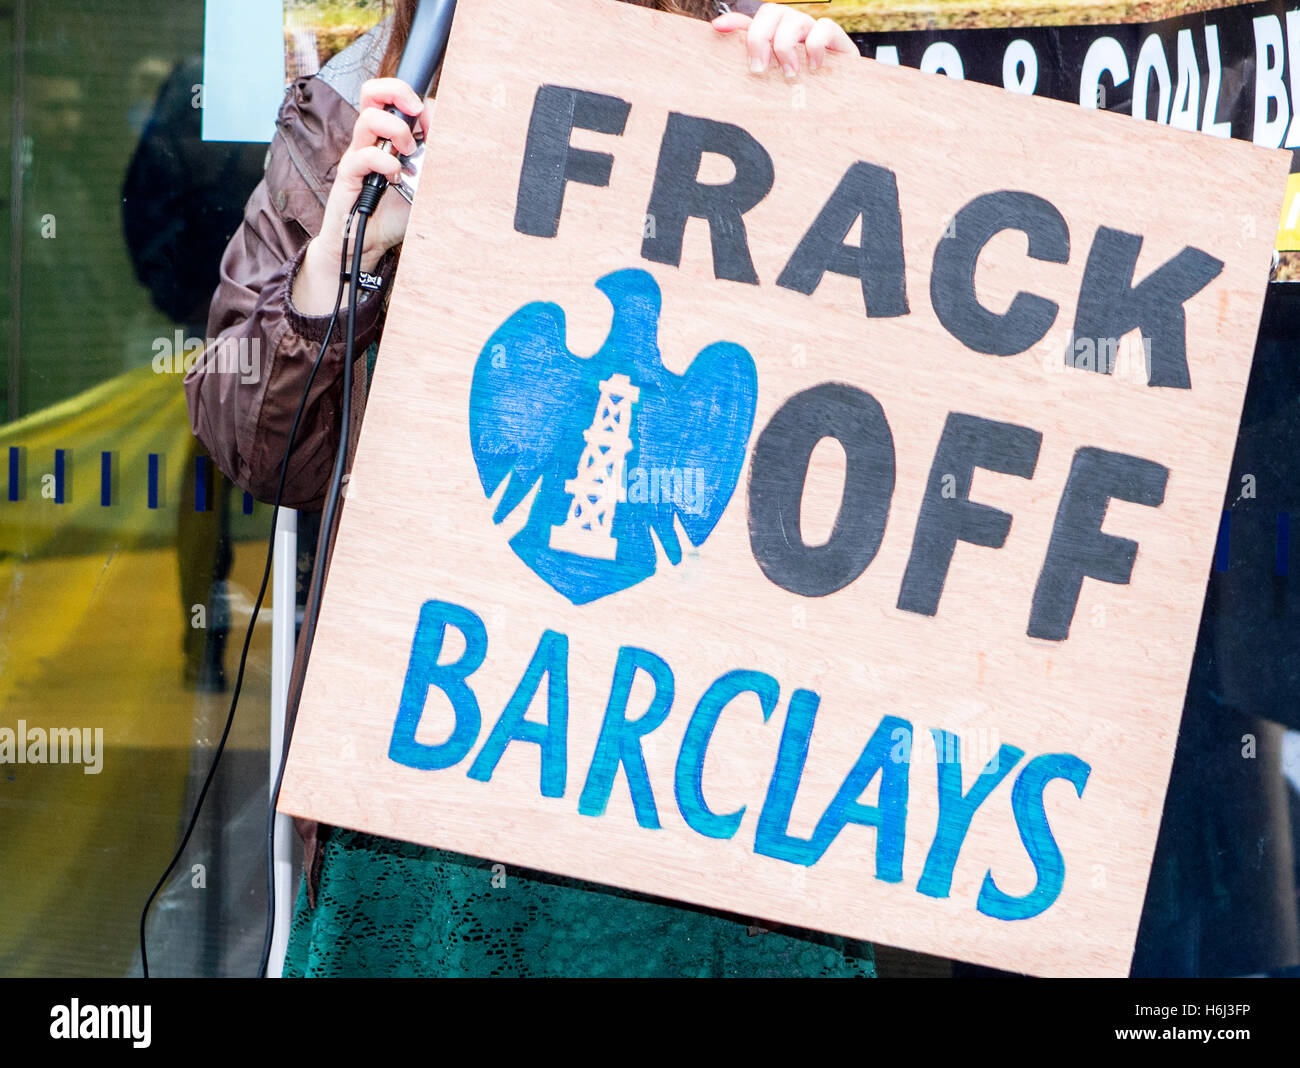 a cuadrilla plumpton frack off anti protest shale gas extraction hydrofrack fracking blackpool methane drilling - Stock Image